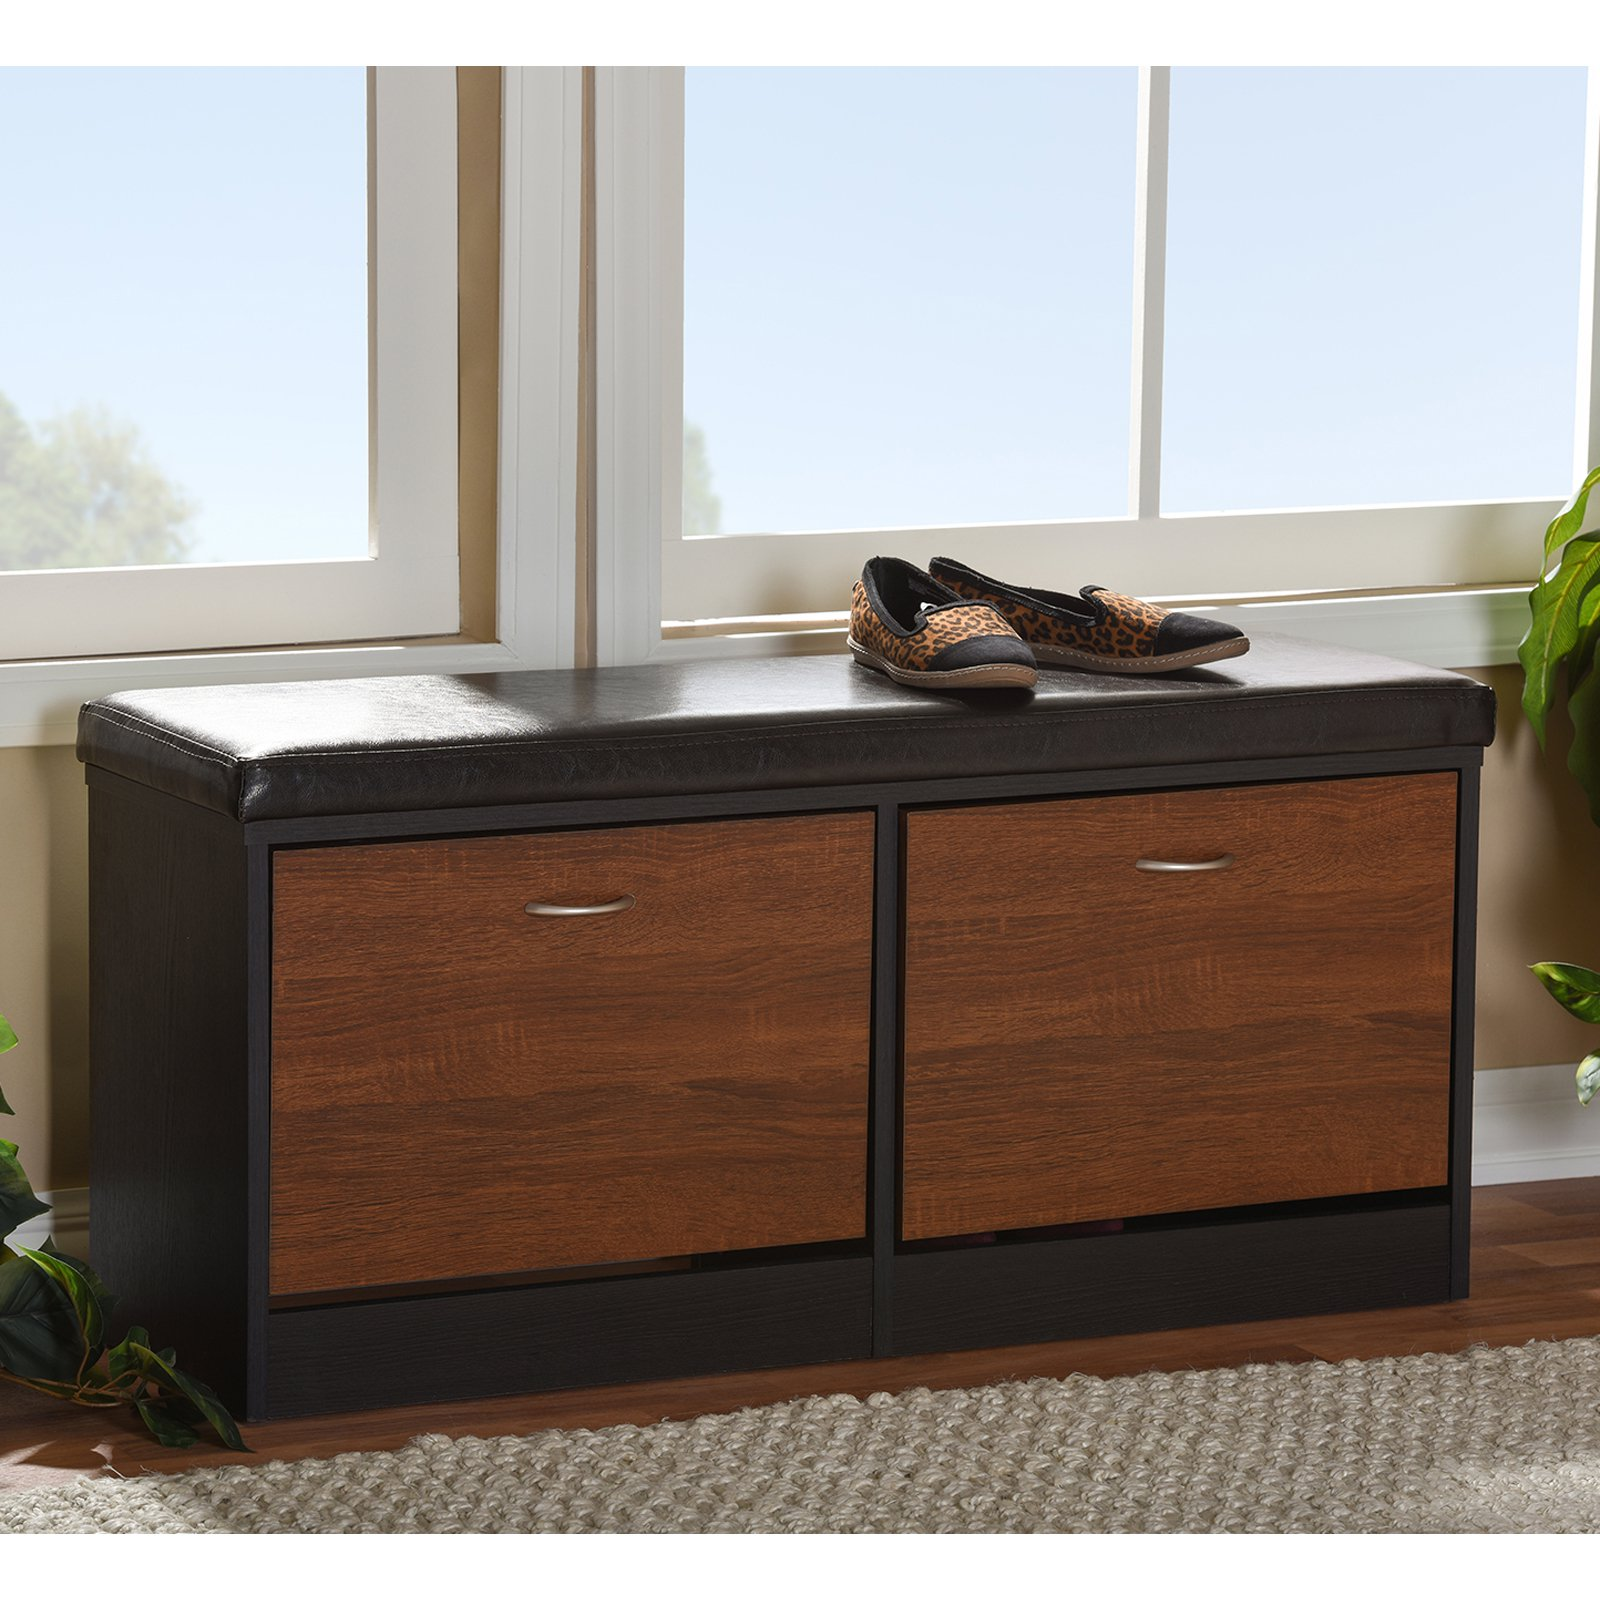 Baxton Studio Foley Modern and Contemporary 2-Tone Dark Brown and Oak Finishing Entryway Storage Cushioned Bench Shoe Rack Cabinet Organizer